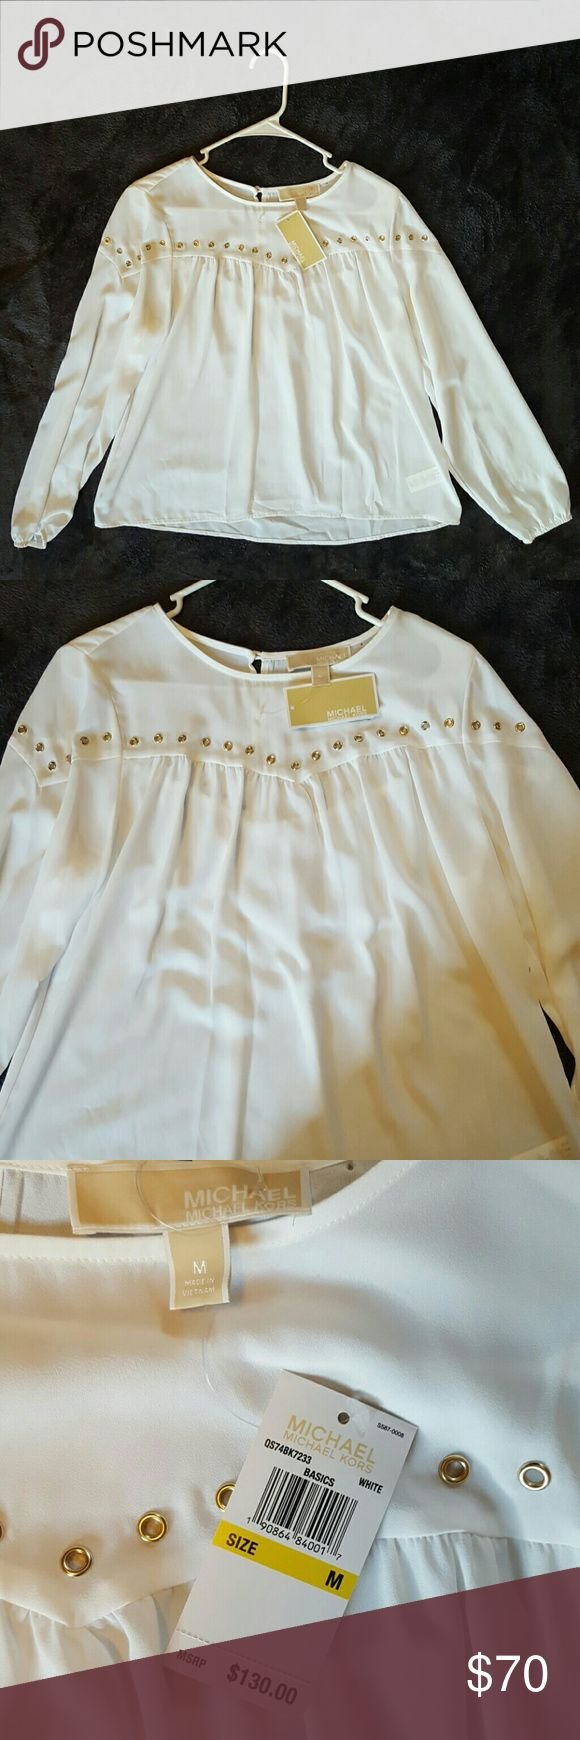 💄💕 GORGEOUS White Michael Kors top gold hardware New with tags! White Michael Kors basics dressy shirt with gold metal hardware on front and back. Back has gold button at top. Elastic cuff sleeves. Perfect with skinny jeans or leggings! MICHAEL Michael Kors Tops